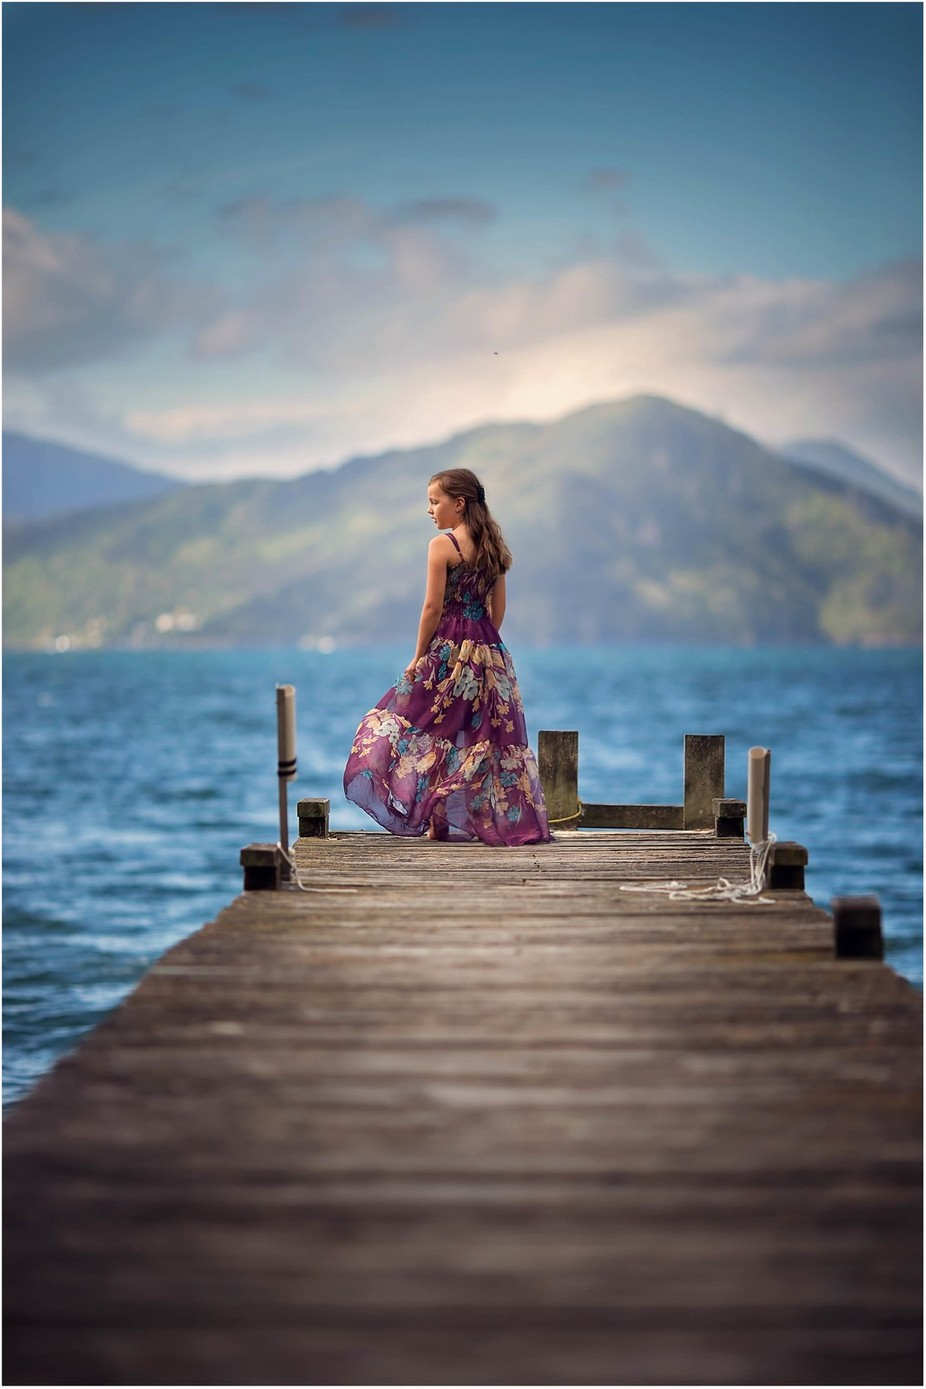 IMG_1332 .3 fb by kirstyking-turner - People In Large Areas Photo Contest